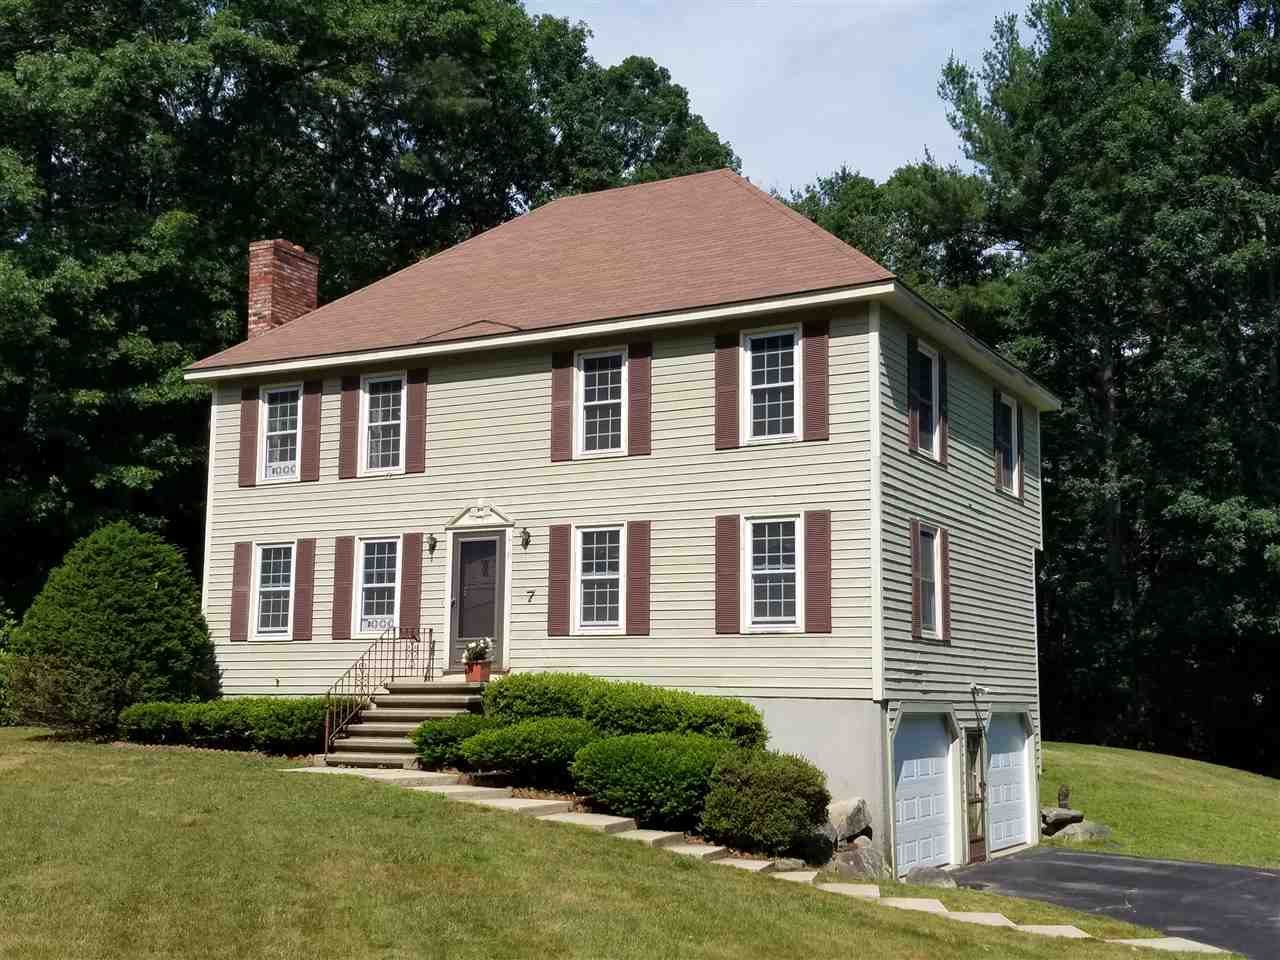 Photo of 7 Spruce Street Londonderry NH 03053